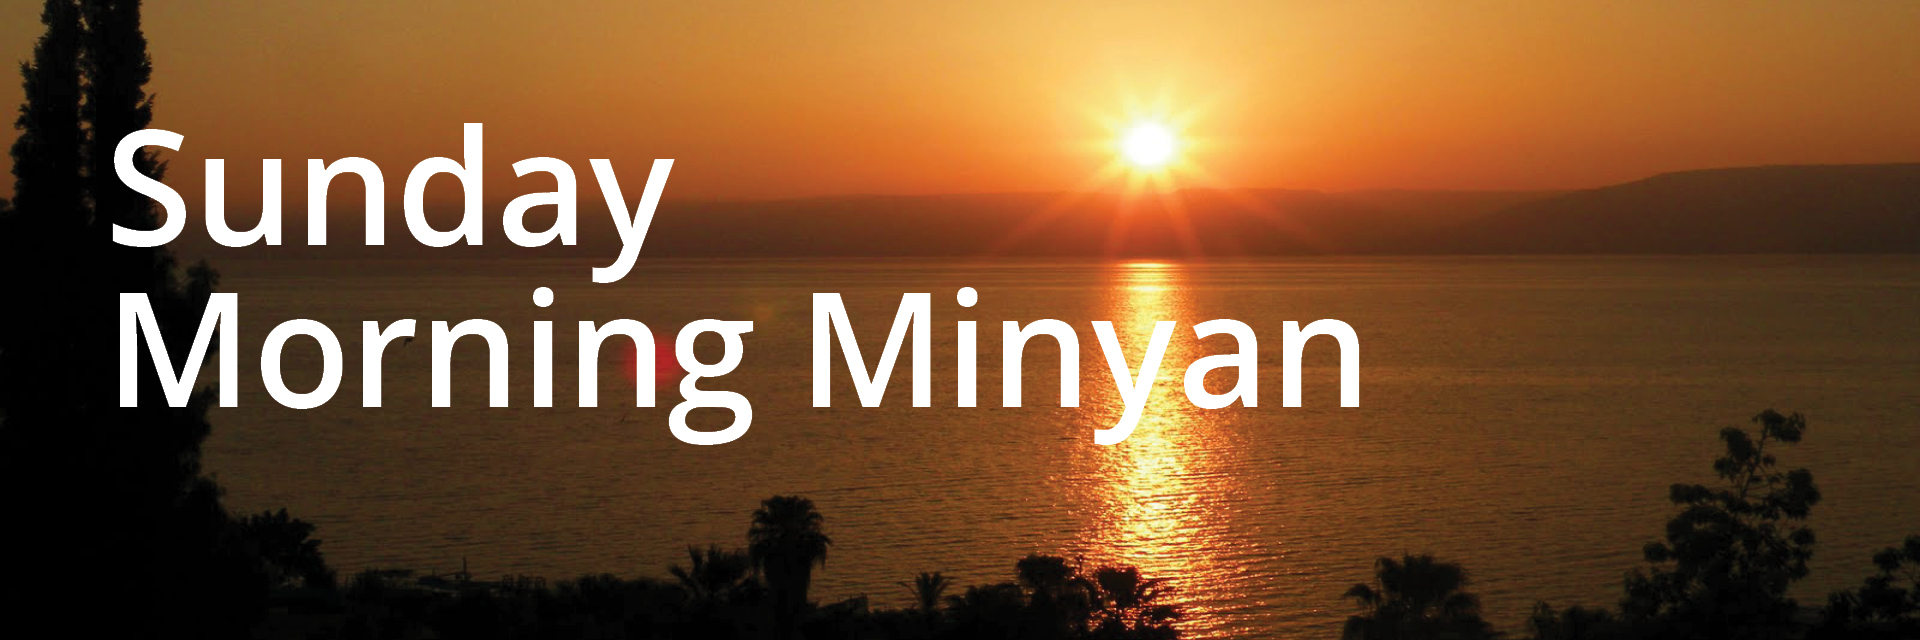 "<a href=""https://www.congkti.org/sunday-morning-minyan.html""